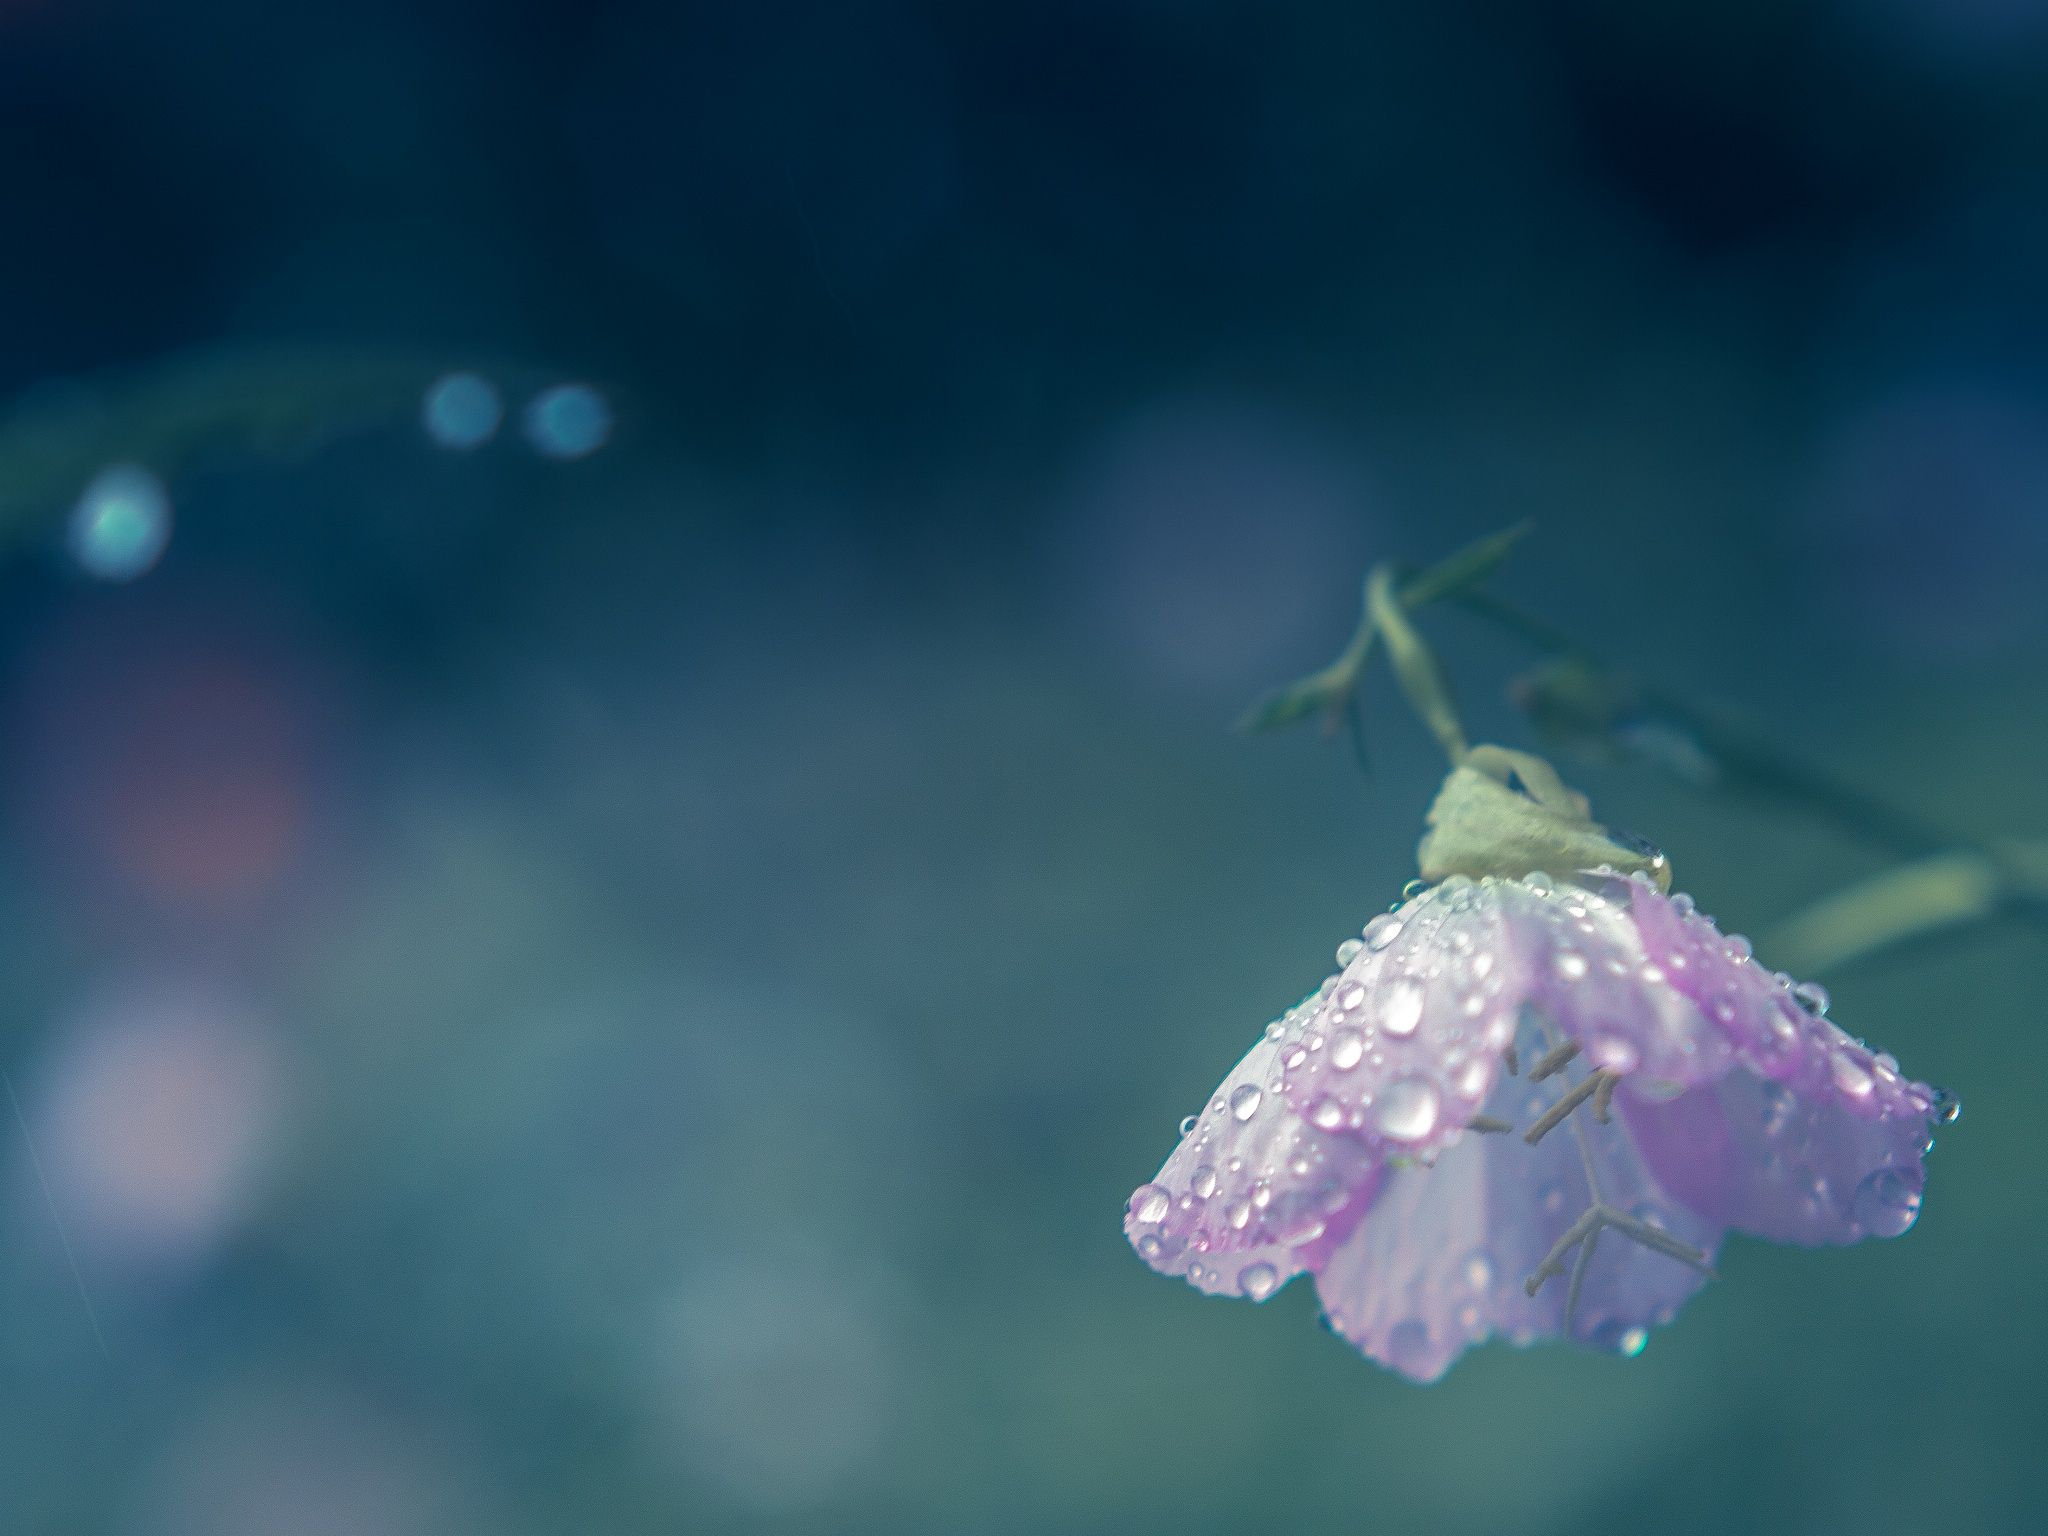 rain+and+rain+by+Miyako+Koumura+on+500px